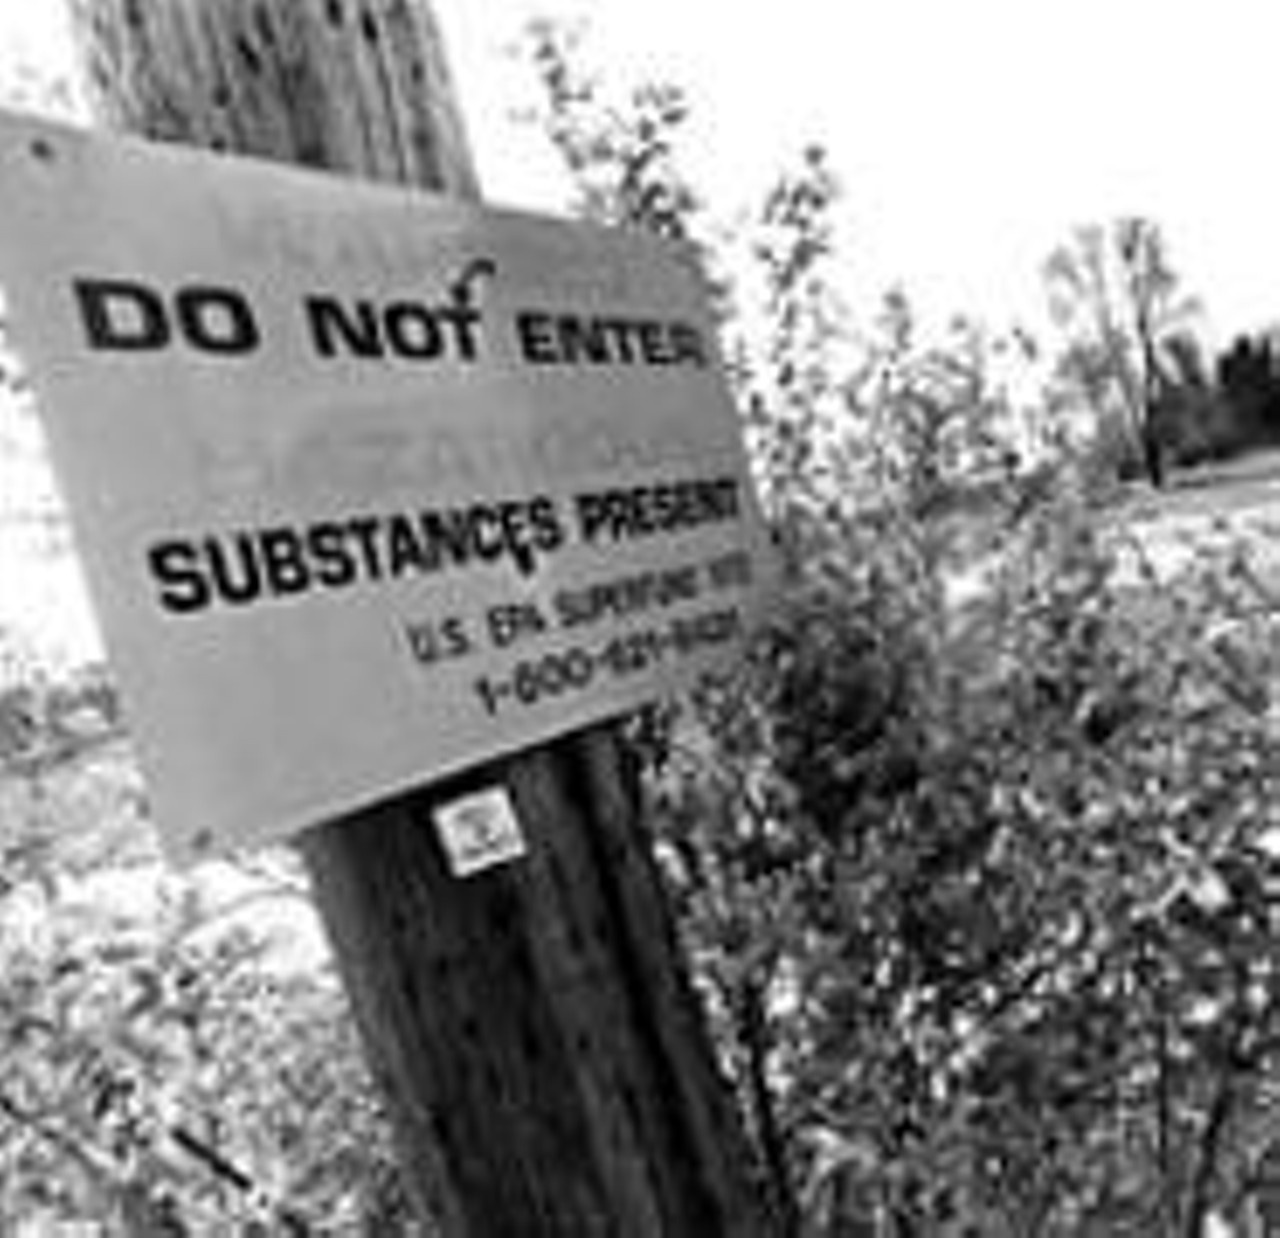 Industrial-Excess-Landfill-substance-sign-from-Scene-2002, 2020 hindsight brings corrupted radiation testing into focus at the EPA – Part 3, National News & Views